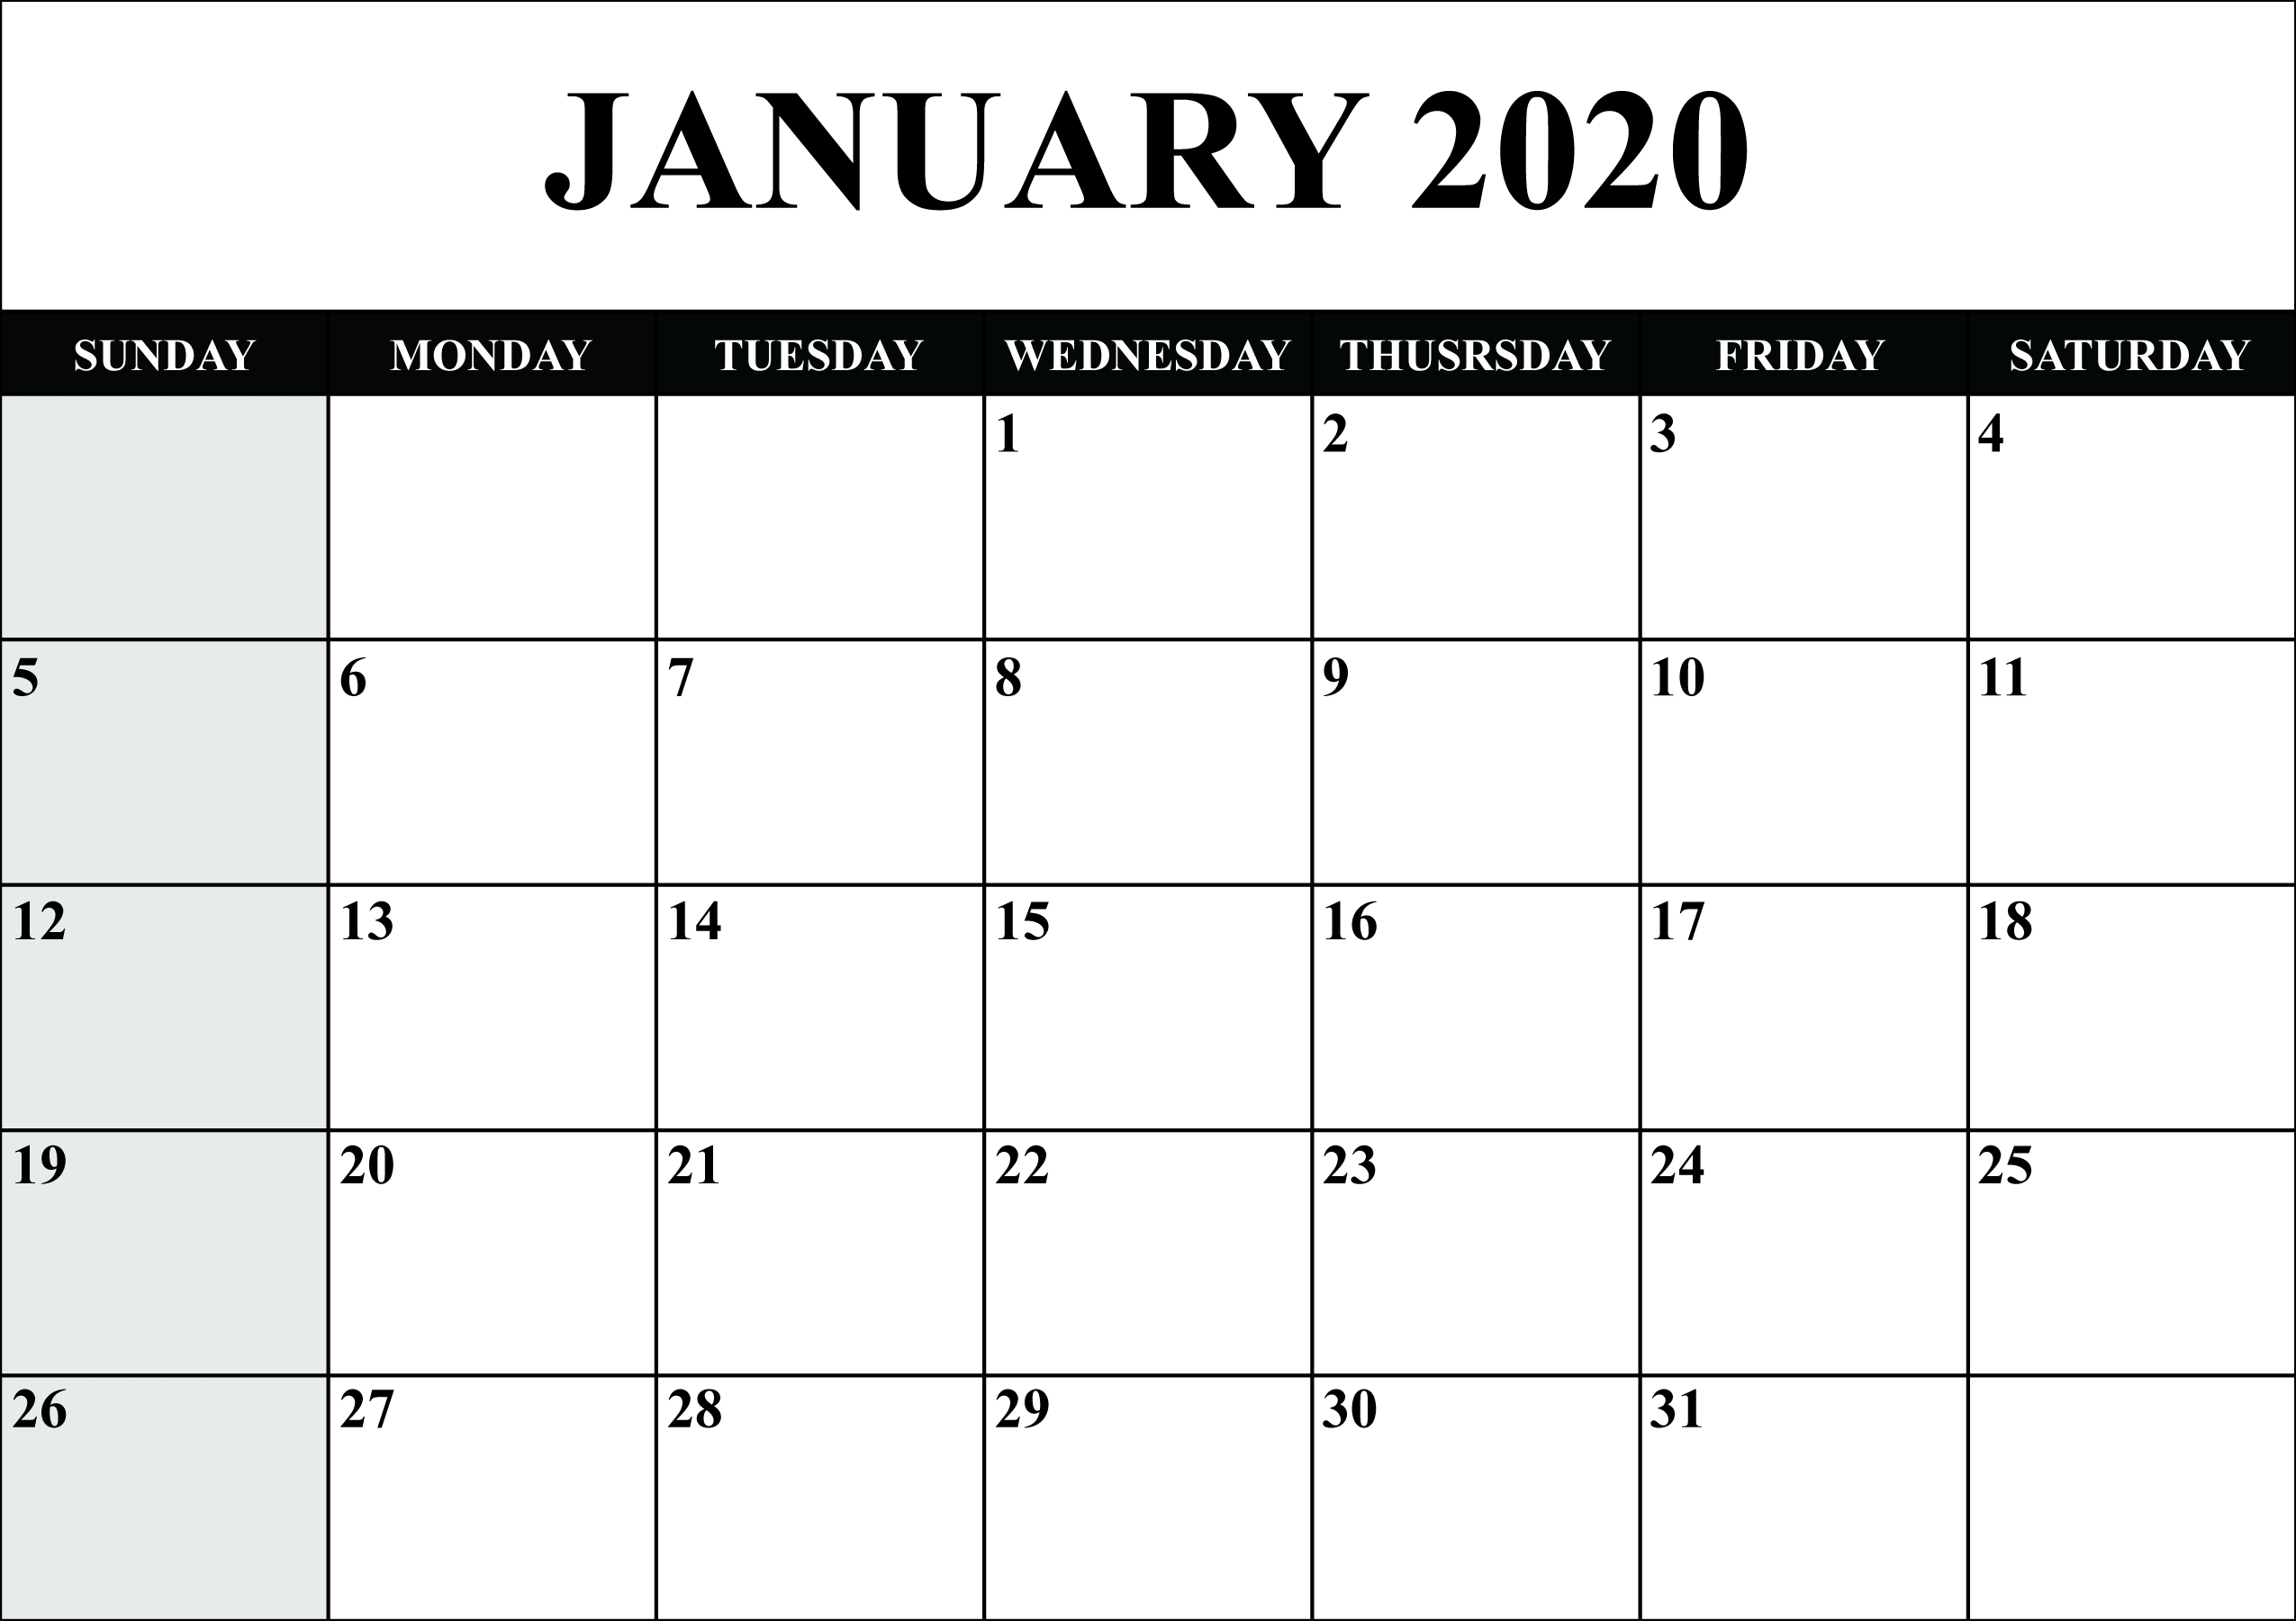 Free Blank January 2020 Calendar Printable In Pdf, Word-January Thru December 2020 Printable Monthly Calendar